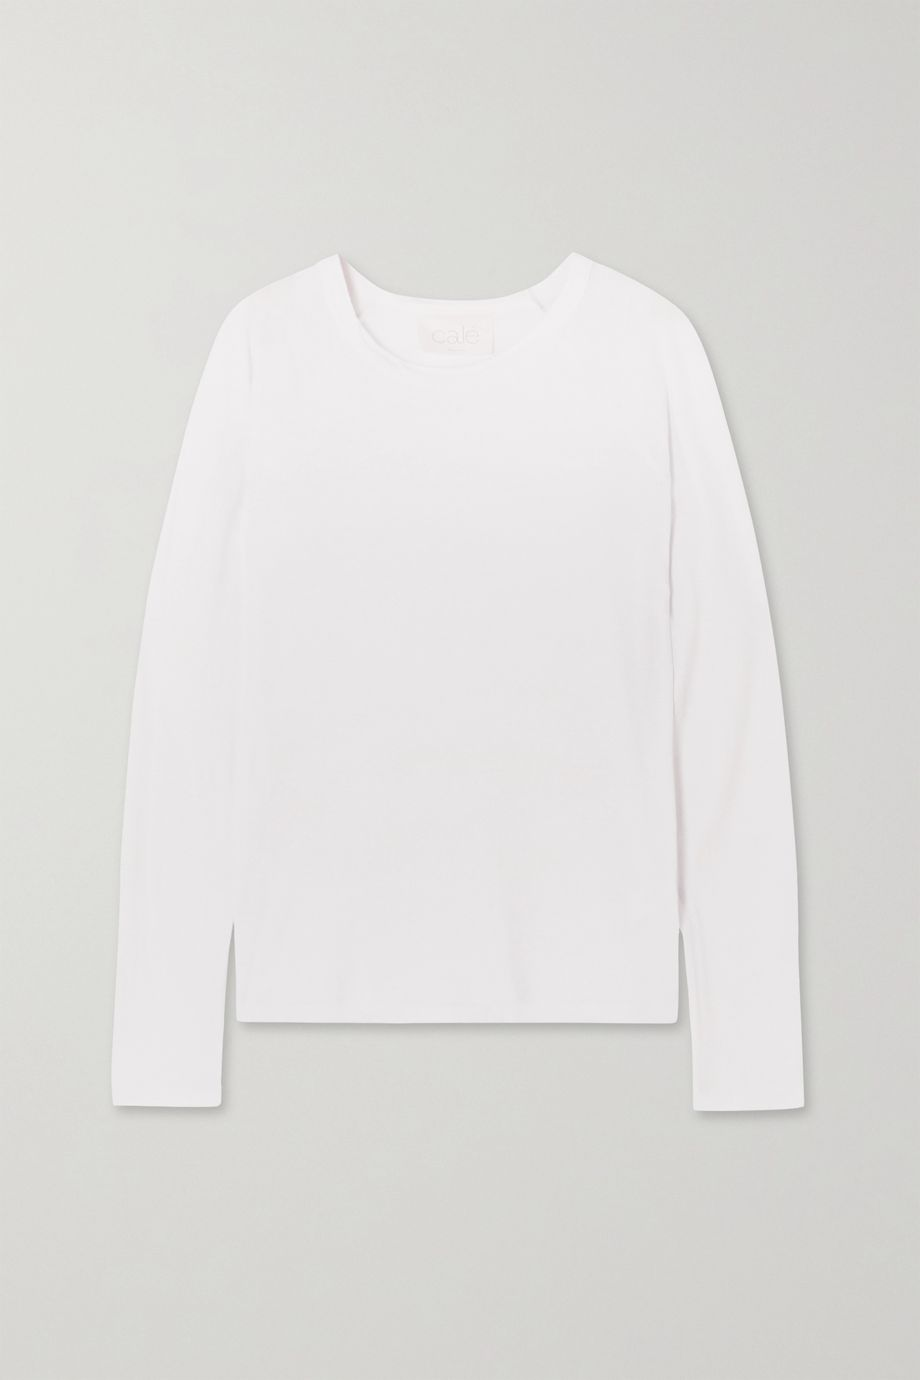 calé Aimee Supima cotton-jersey top